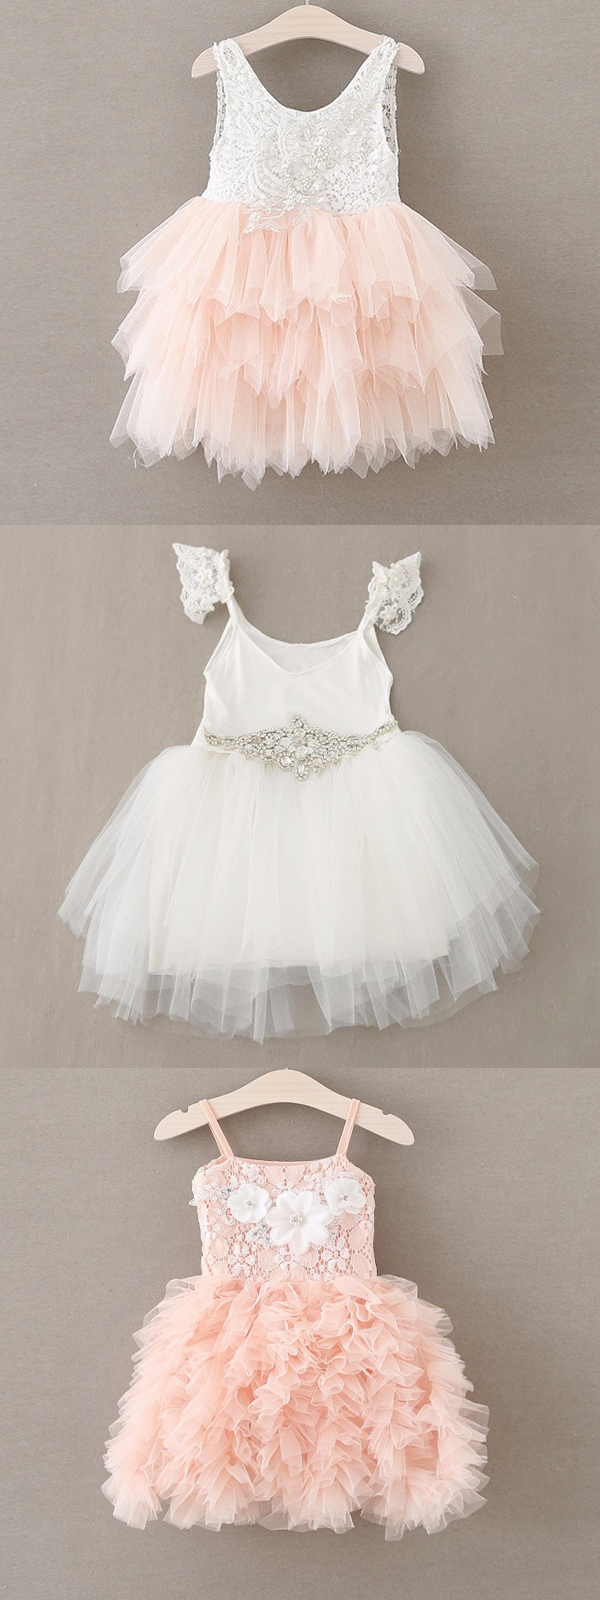 d4e1d936315f Flower Girl Dresses for toddlers girls Pink White Lace Chiffon Tutu ...